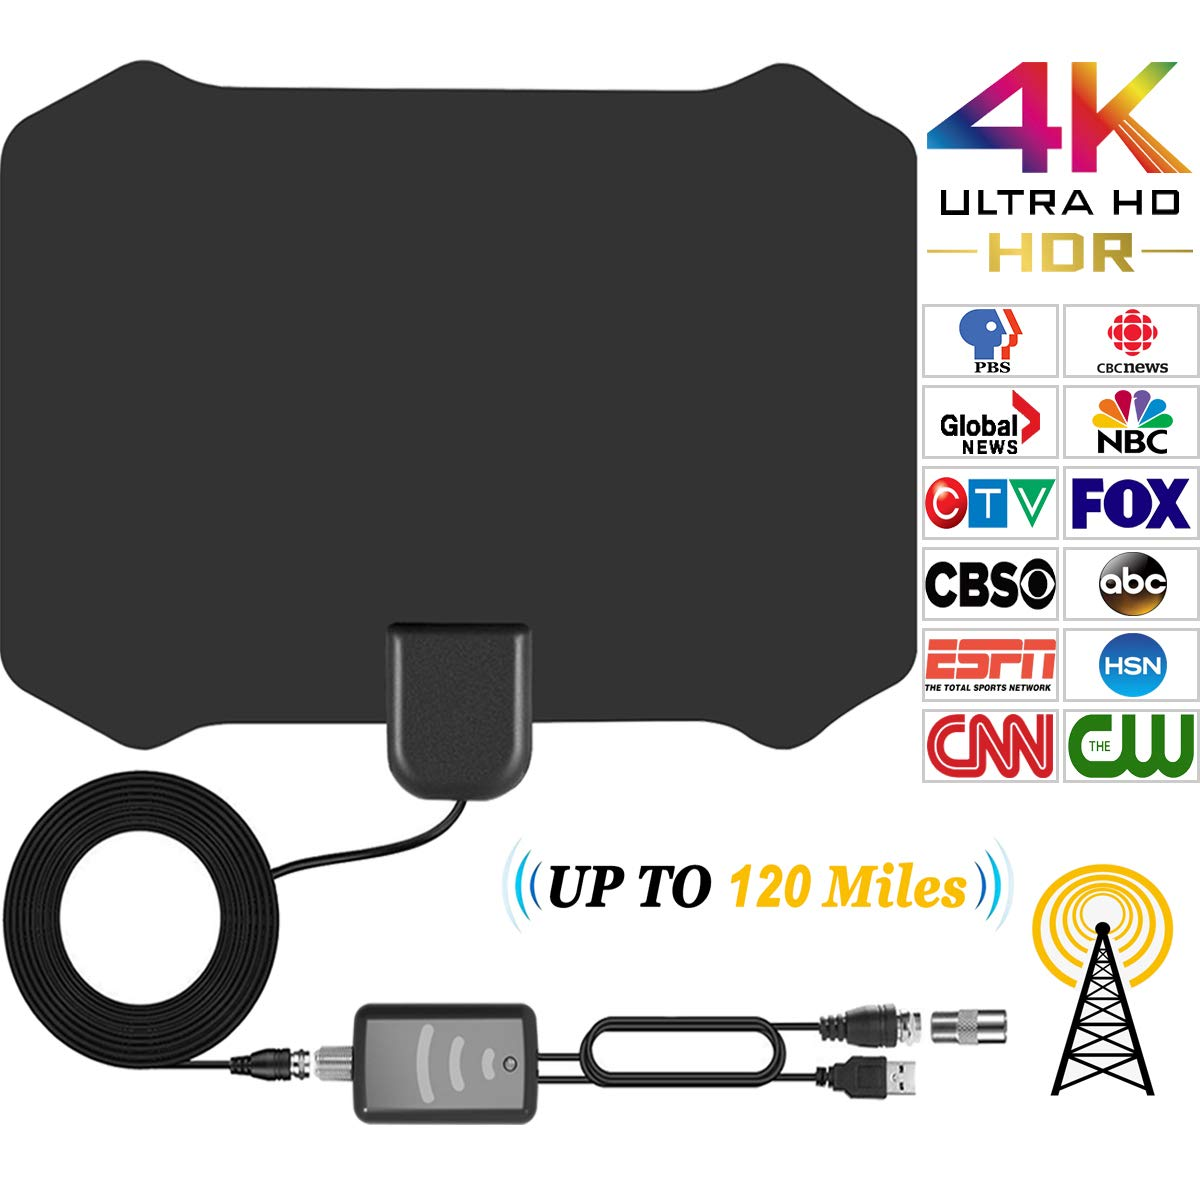 TV Antenna for Digital TV Indoor HDTV Antenna With 120 Miles Long Range Support 4K 1080p,All Types TV's With Powerful Detachable Amplifier Signal Booster, Power Adapter,Long Coax Cable [2018 Upgraded] by PapaKoyal